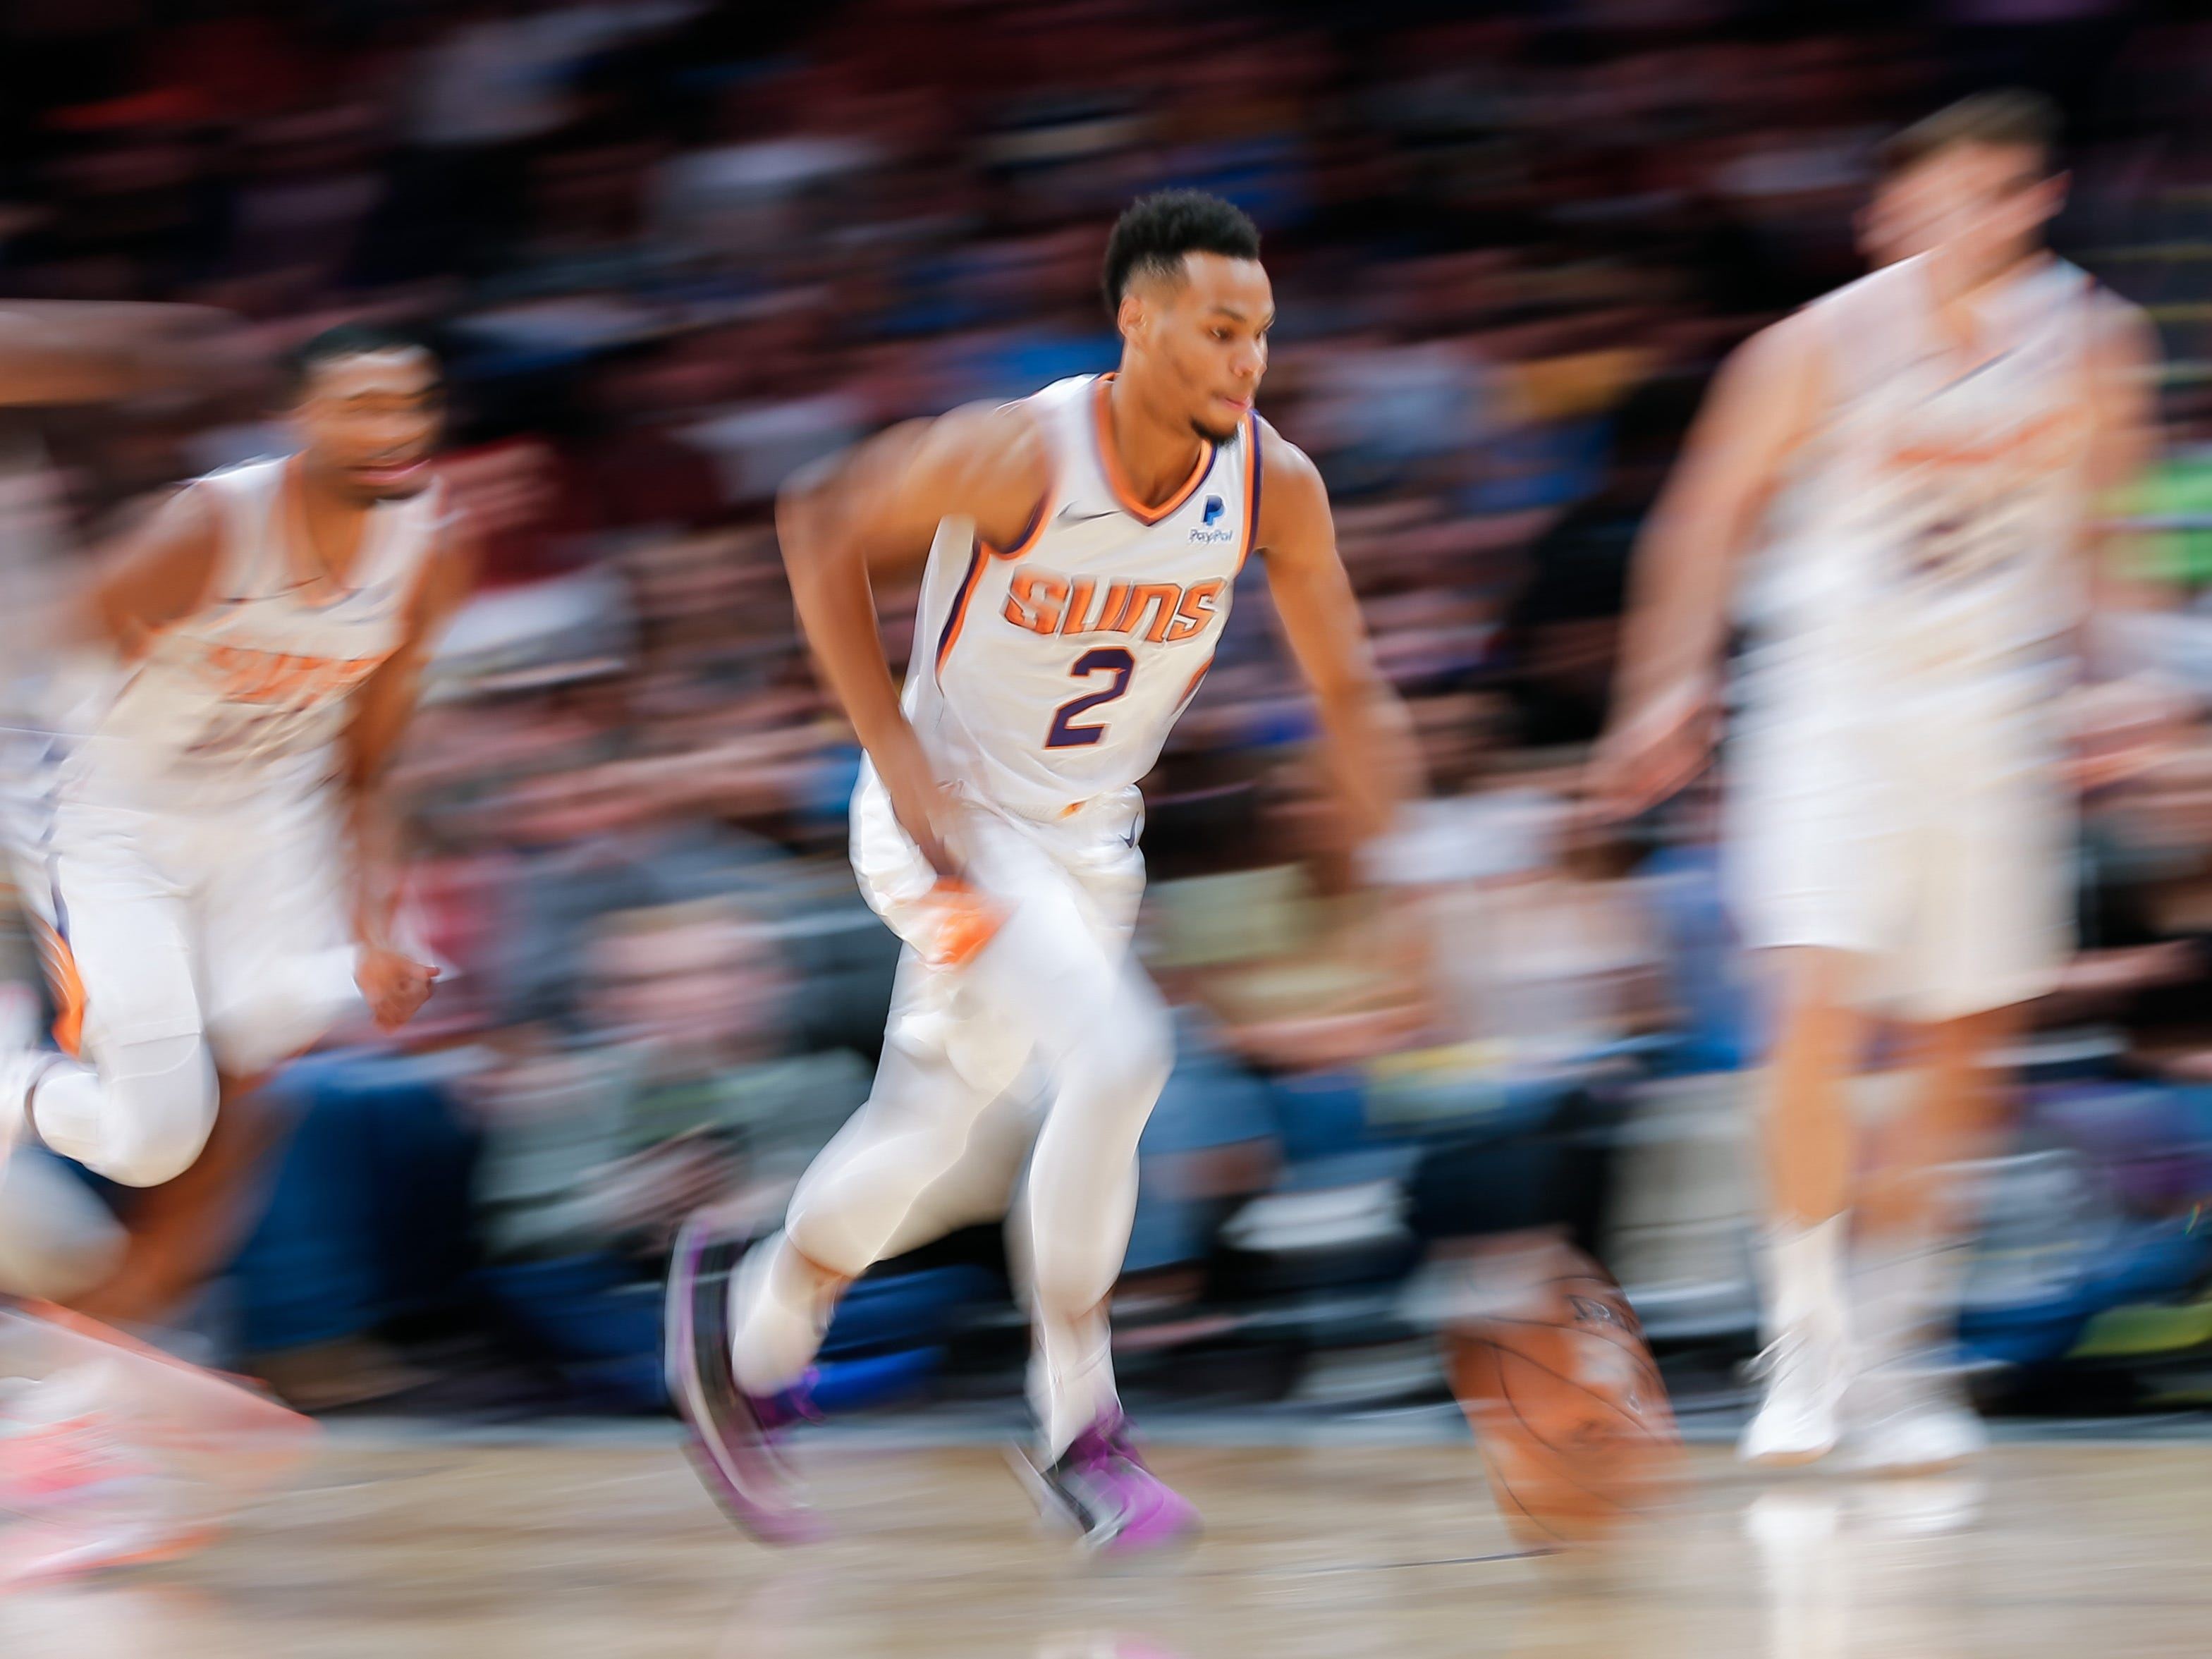 Oct 20, 2018; Denver, CO, USA; Multiple exposure image of Phoenix Suns guard Elie Okobo (2) dribbling the ball up court in the fourth quarter against the Denver Nuggets at the Pepsi Center. Mandatory Credit: Isaiah J. Downing-USA TODAY Sports